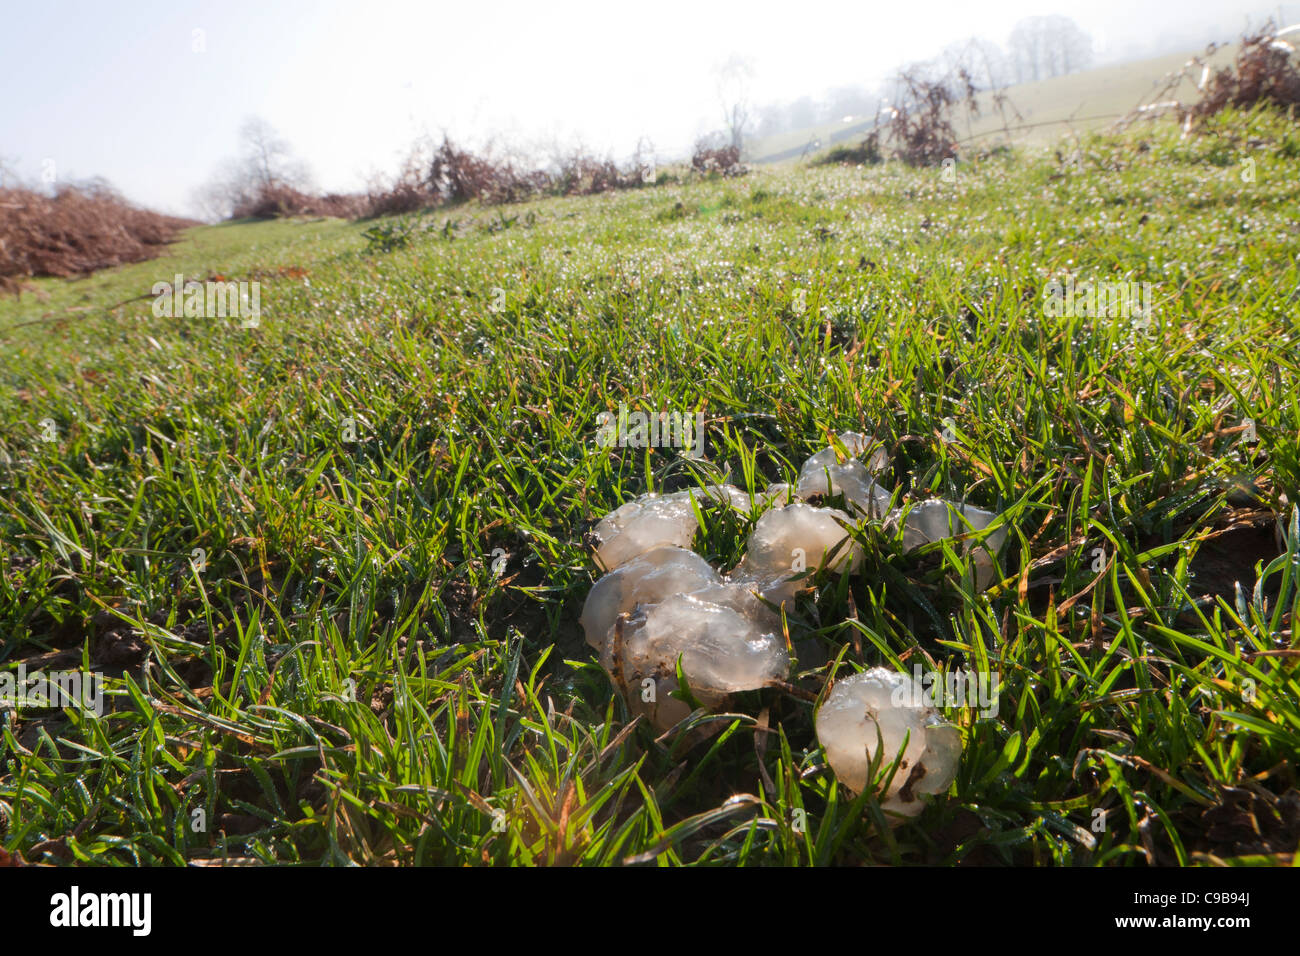 Mysterious unidentified jelly substance lying on the grass on the Cumbrian Fells, Cumbria, England - Stock Image